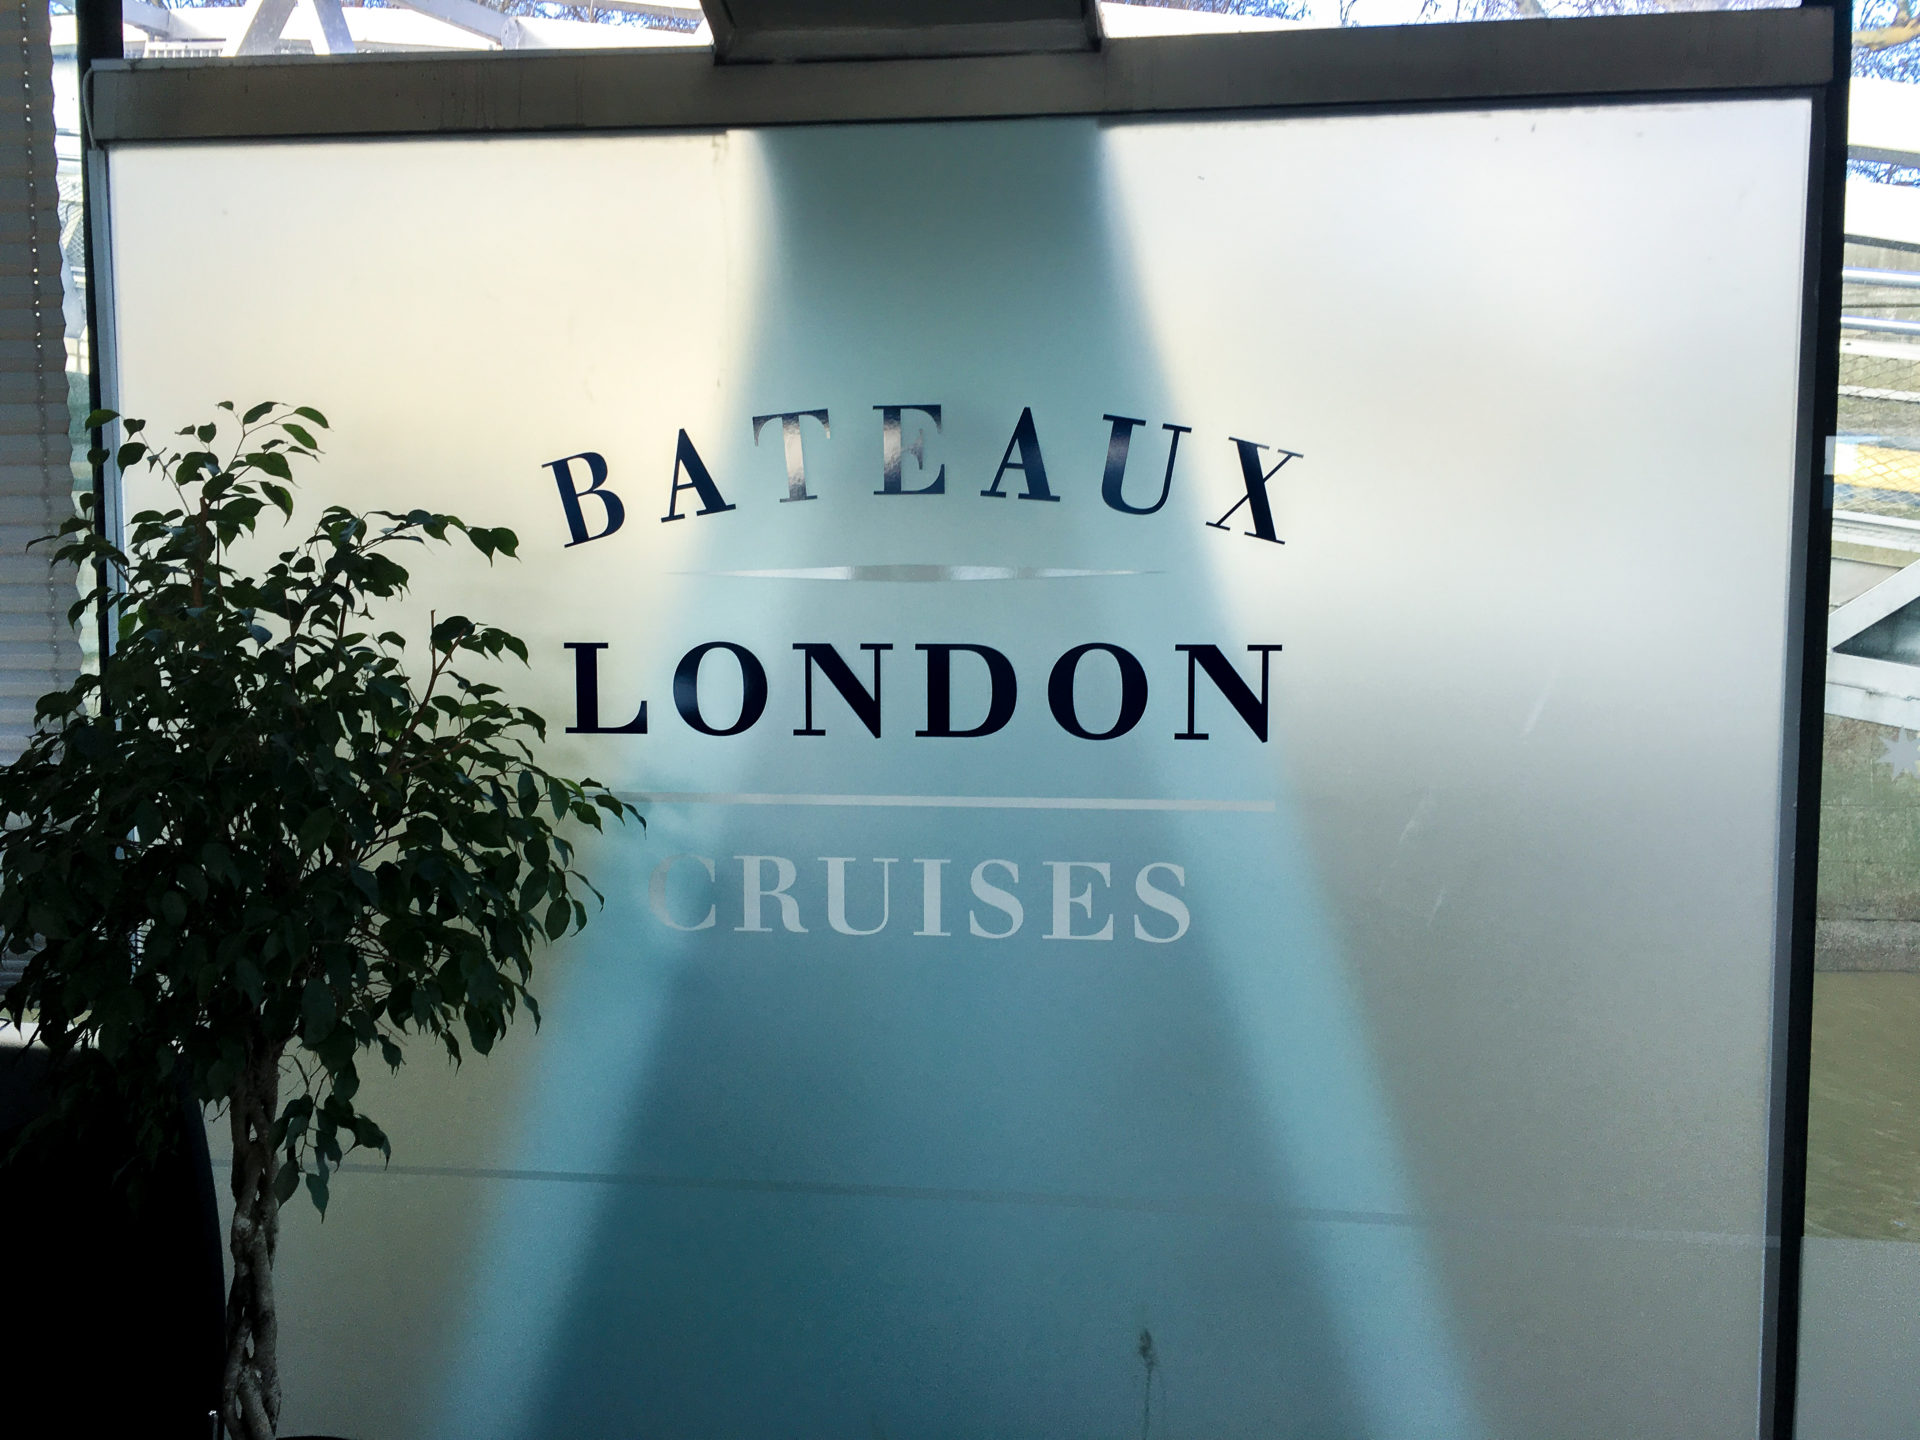 Bateaux London Cruises at Embankment Pier